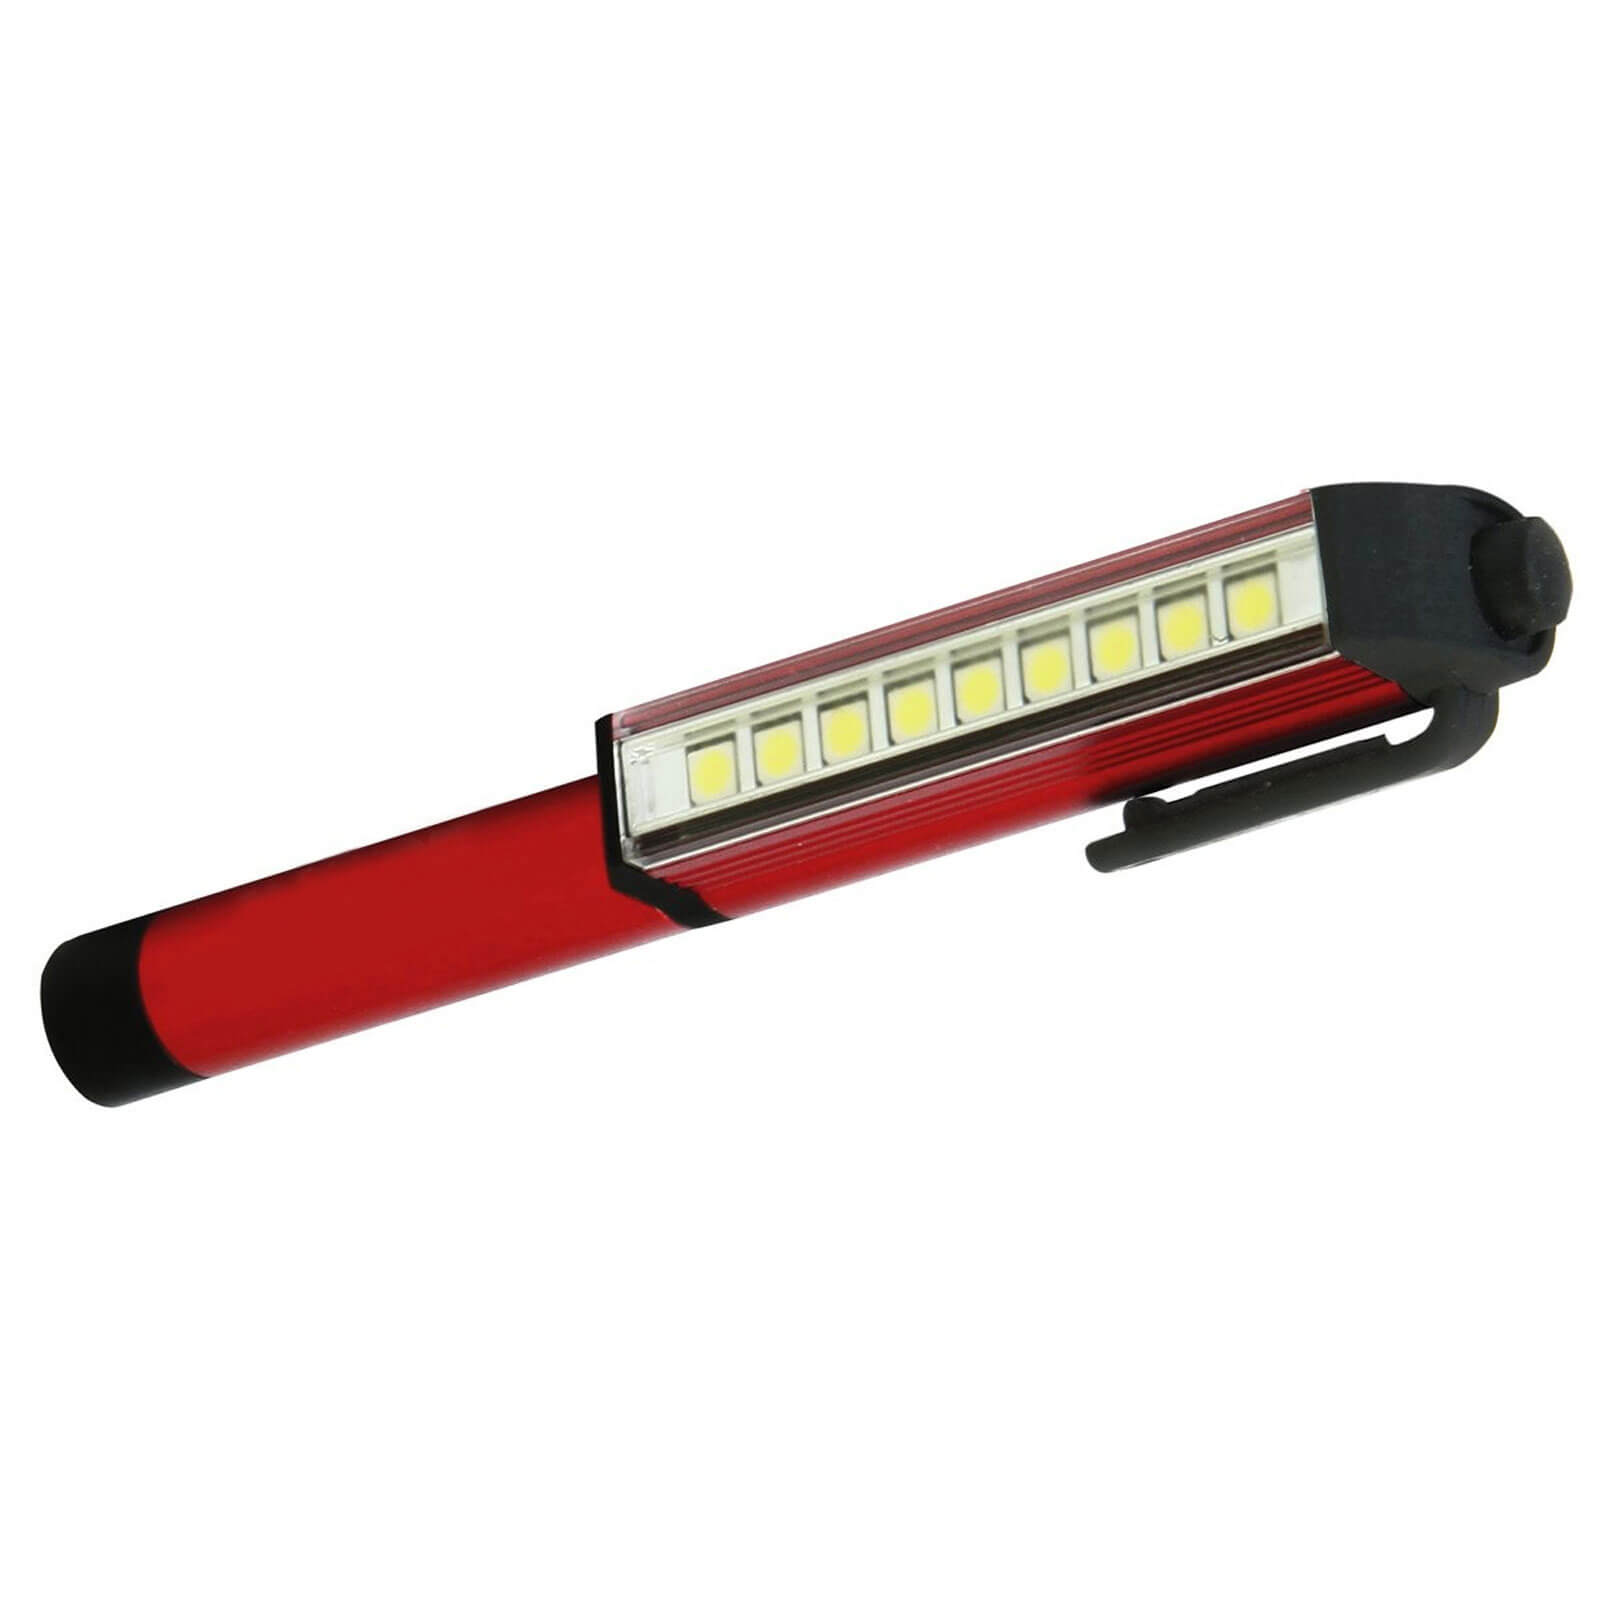 Image of Aluminium LED Pen Light Torch 140 Lumens with Magnetic Clip